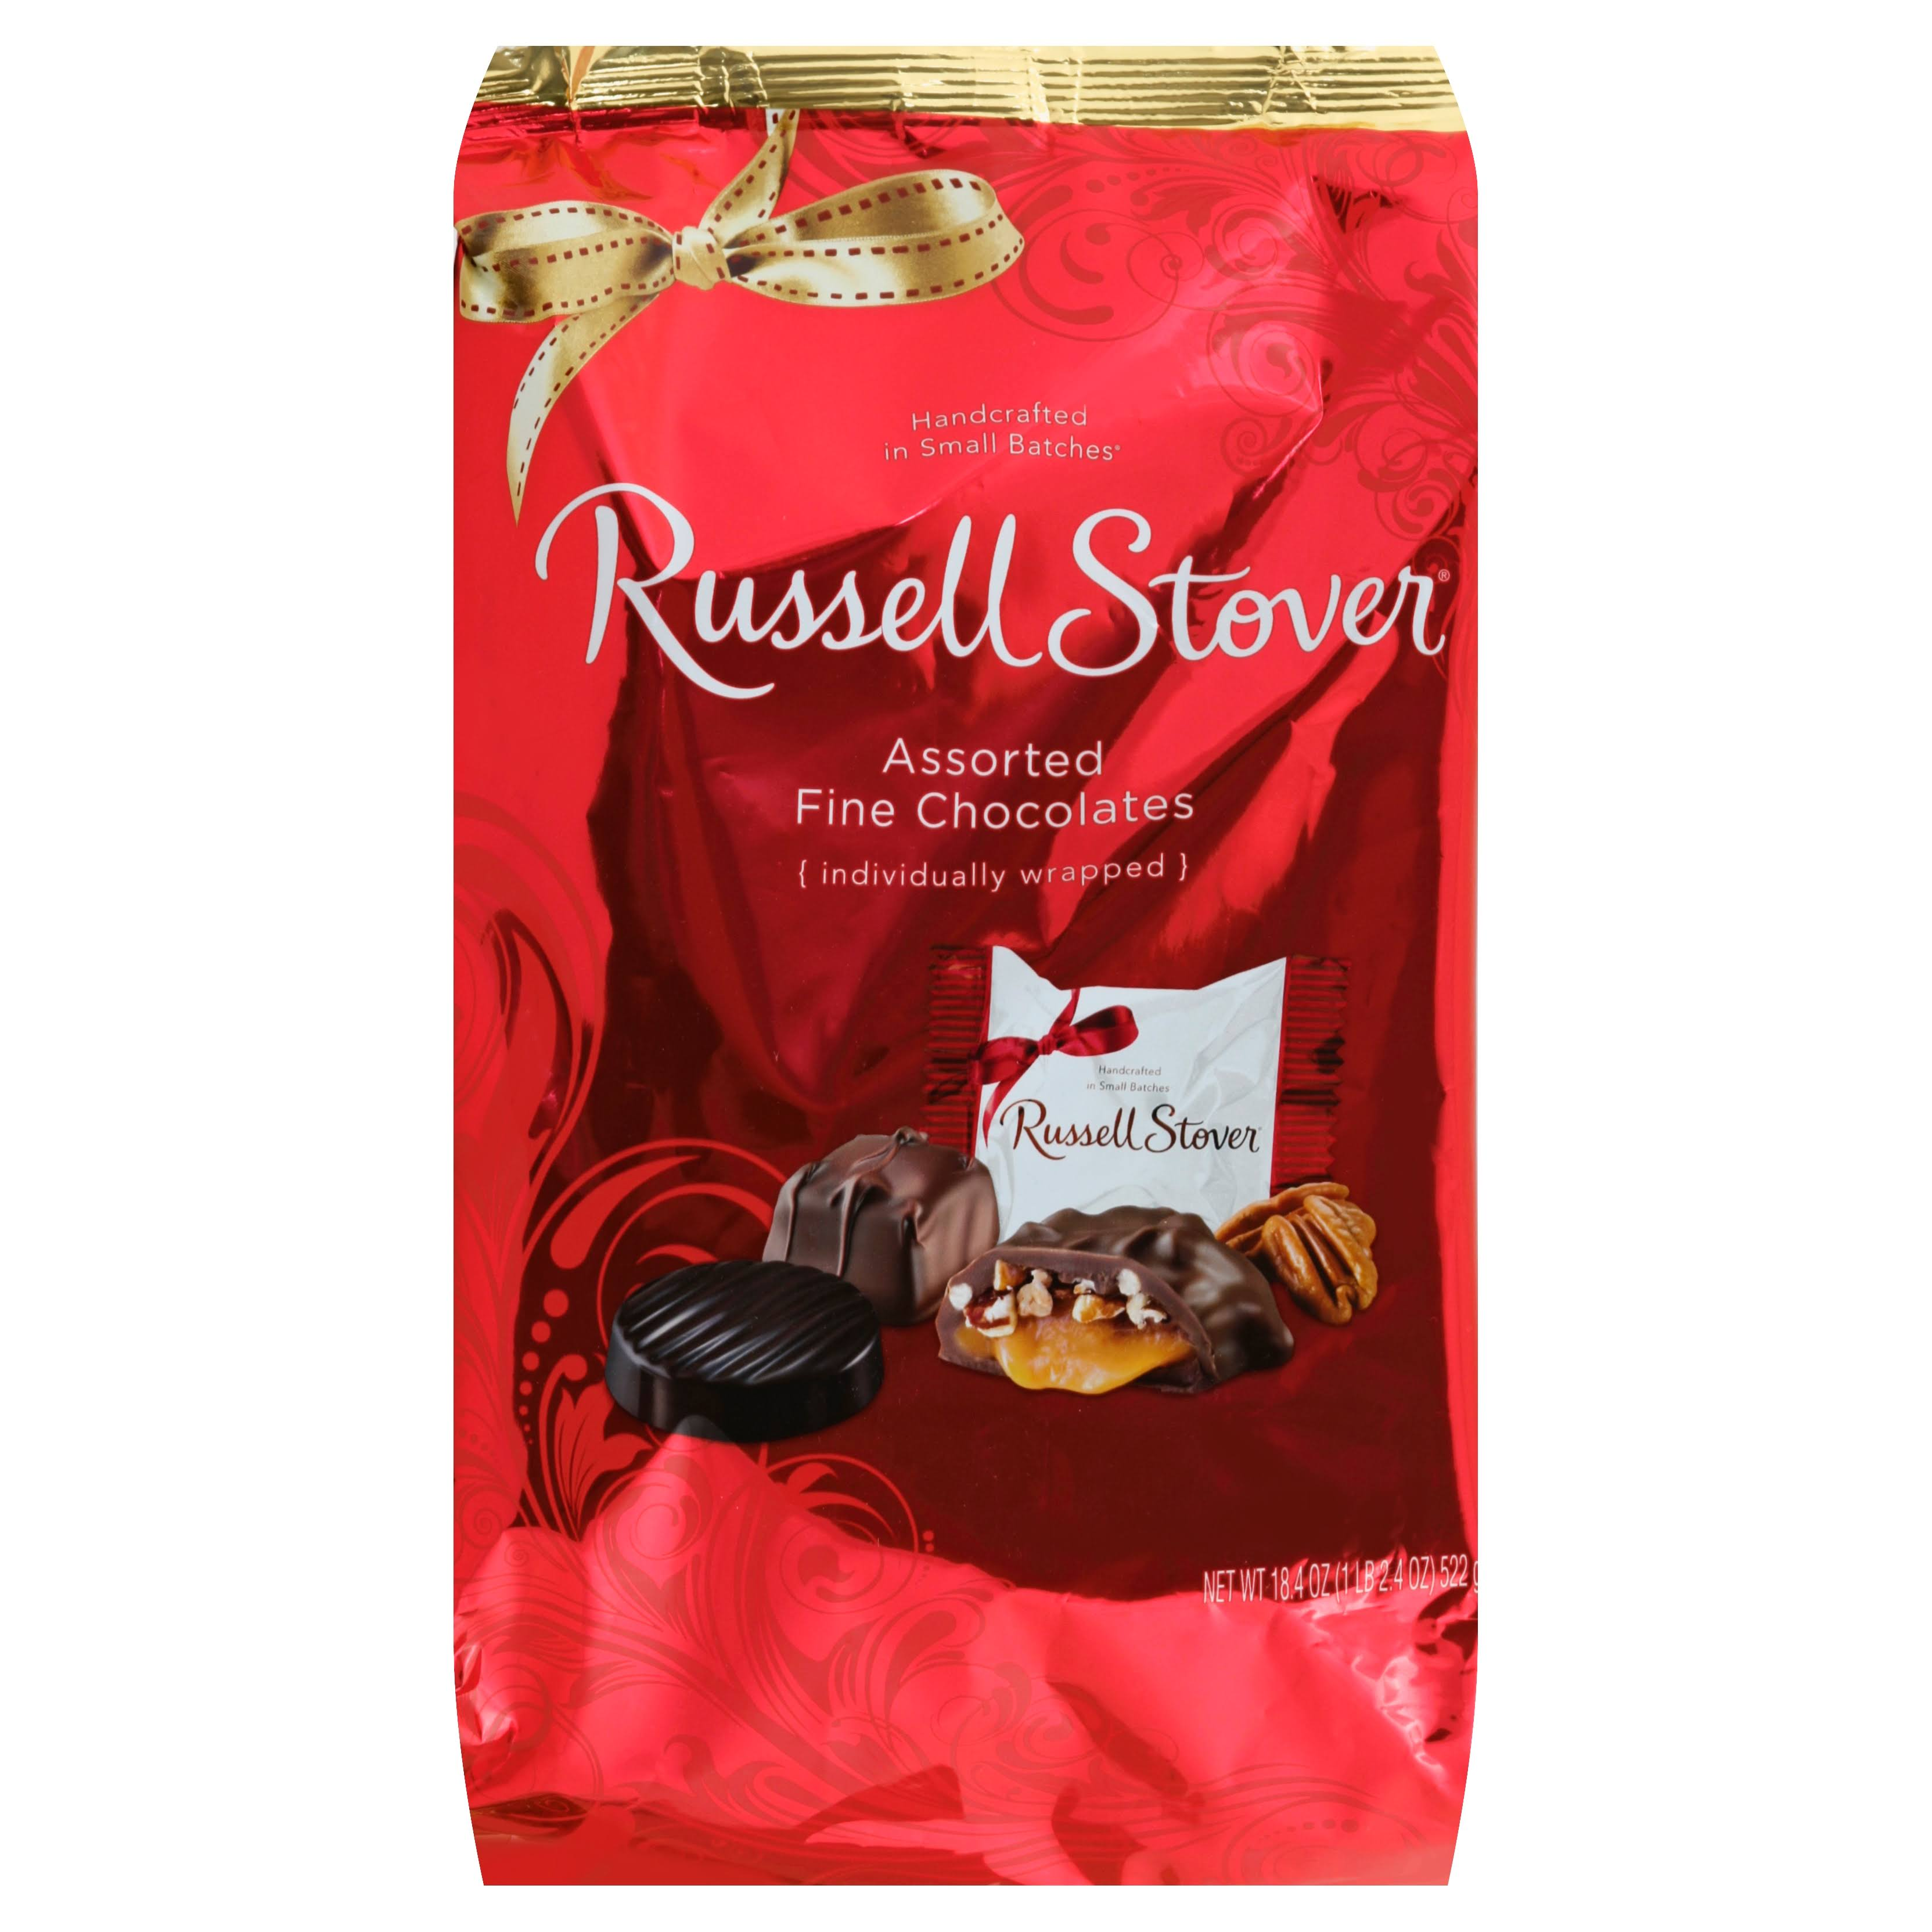 Russell Stover Assorted Chocolates Bag - Red, 18.4oz